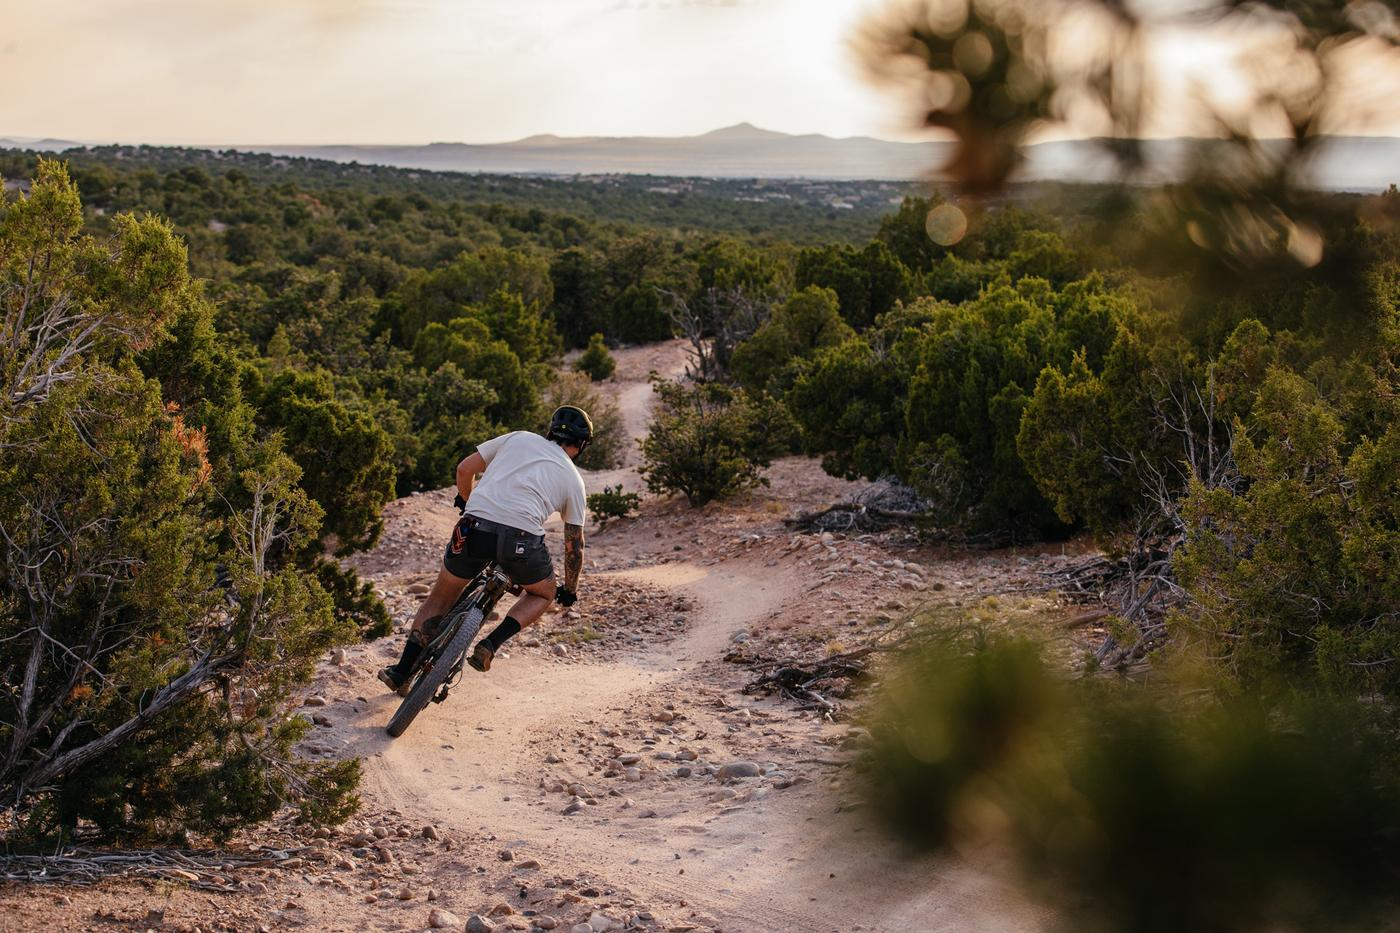 Made in Santa Fe: Farewell Bags for Cycling and More – Eric's Salsa Timberjack